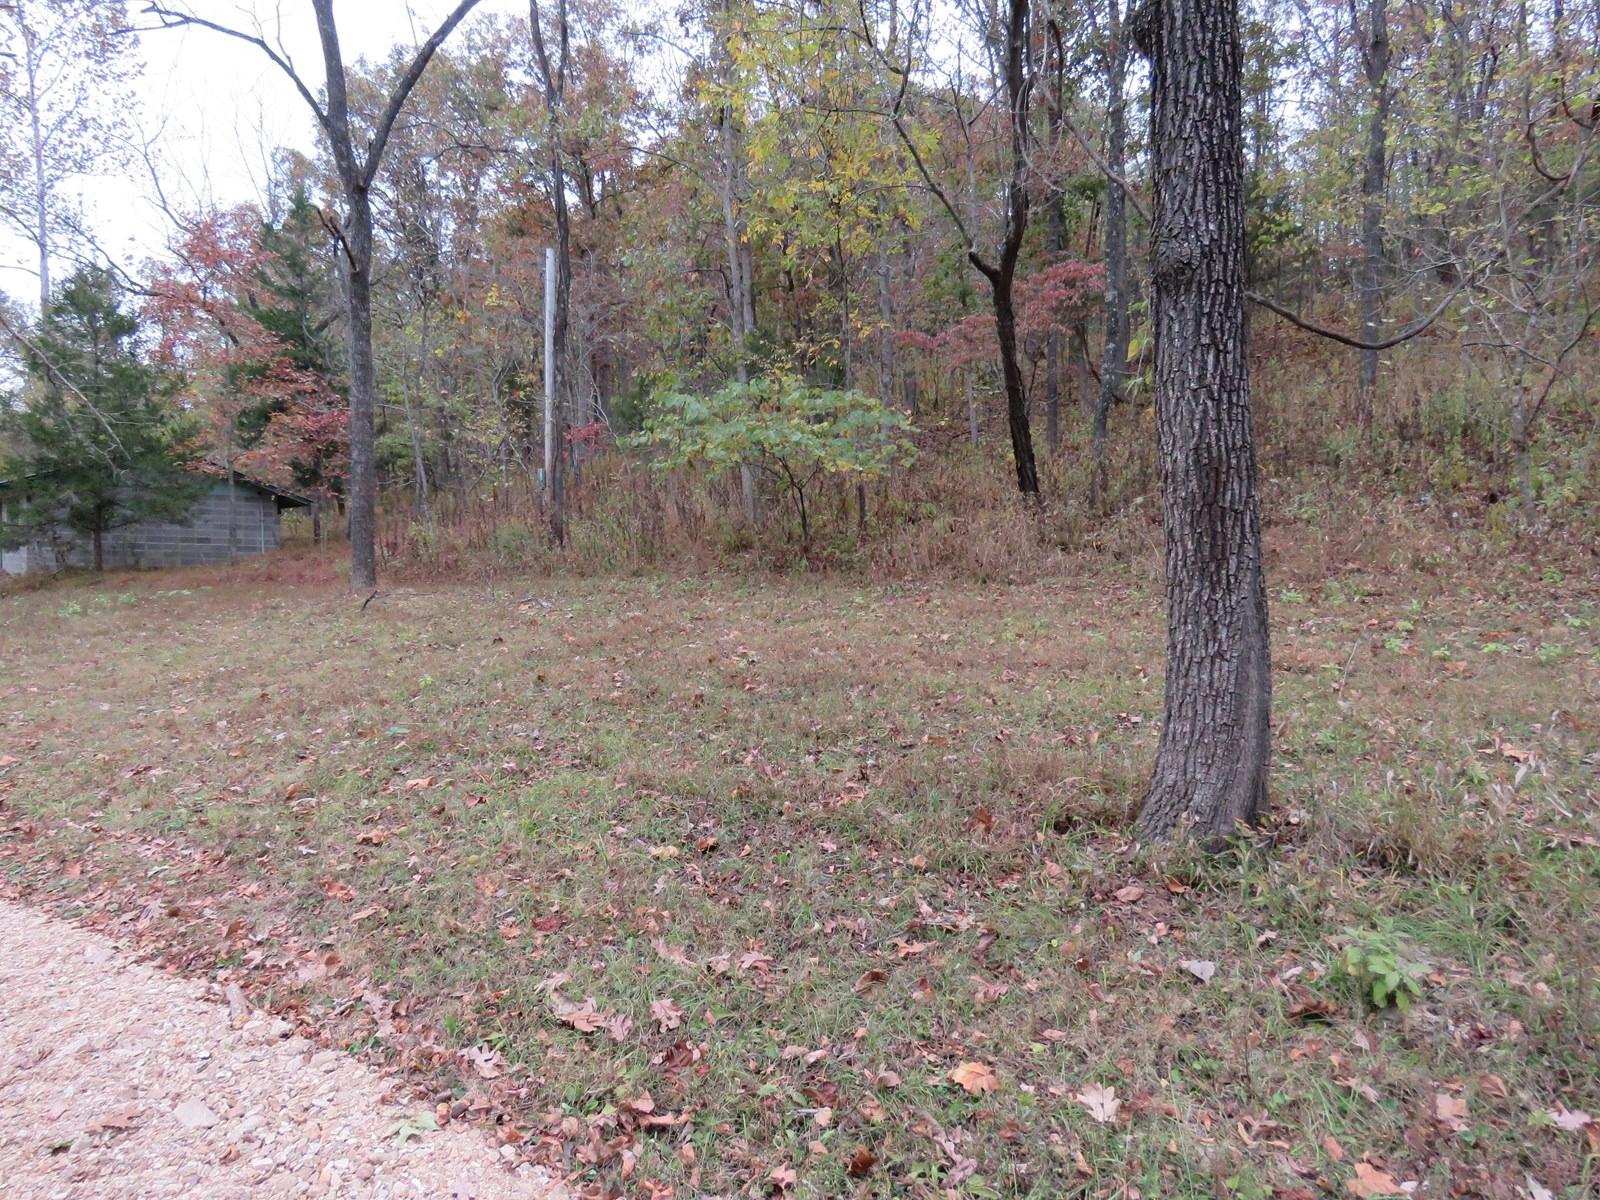 Land for sale with Creek frontage. Ava Mo